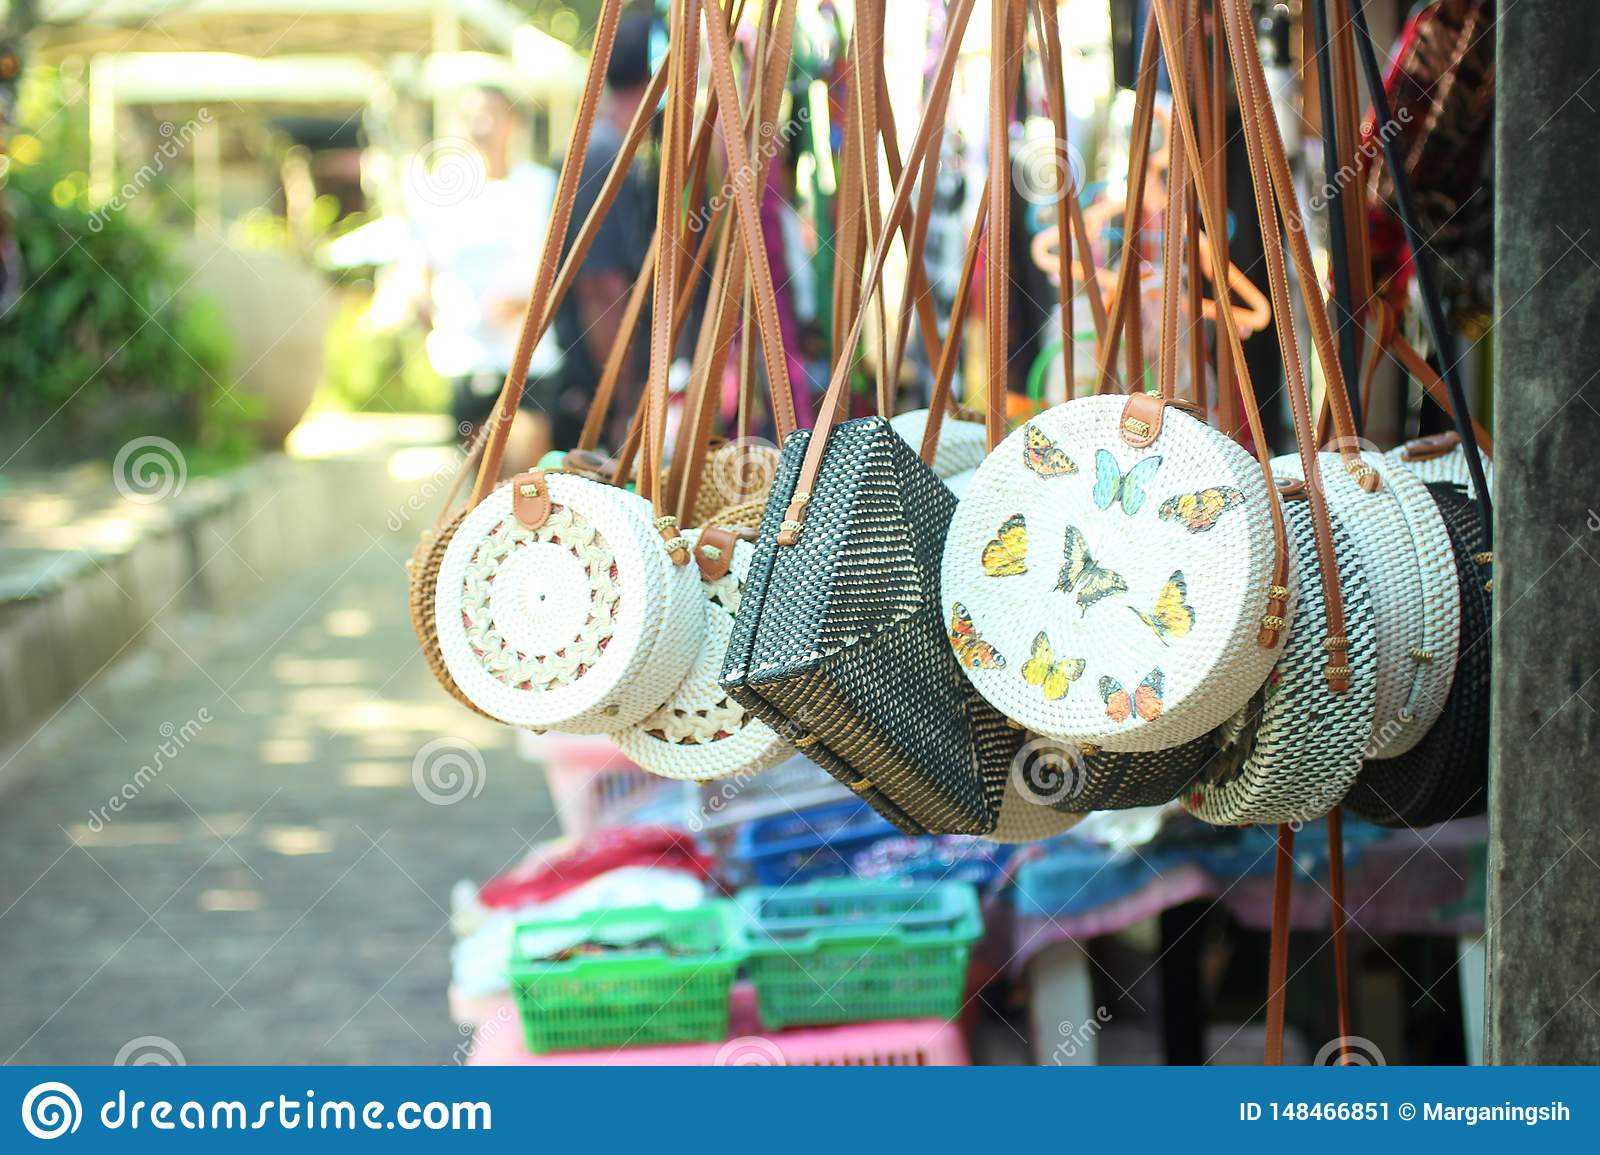 Balinese bags and souvenirs